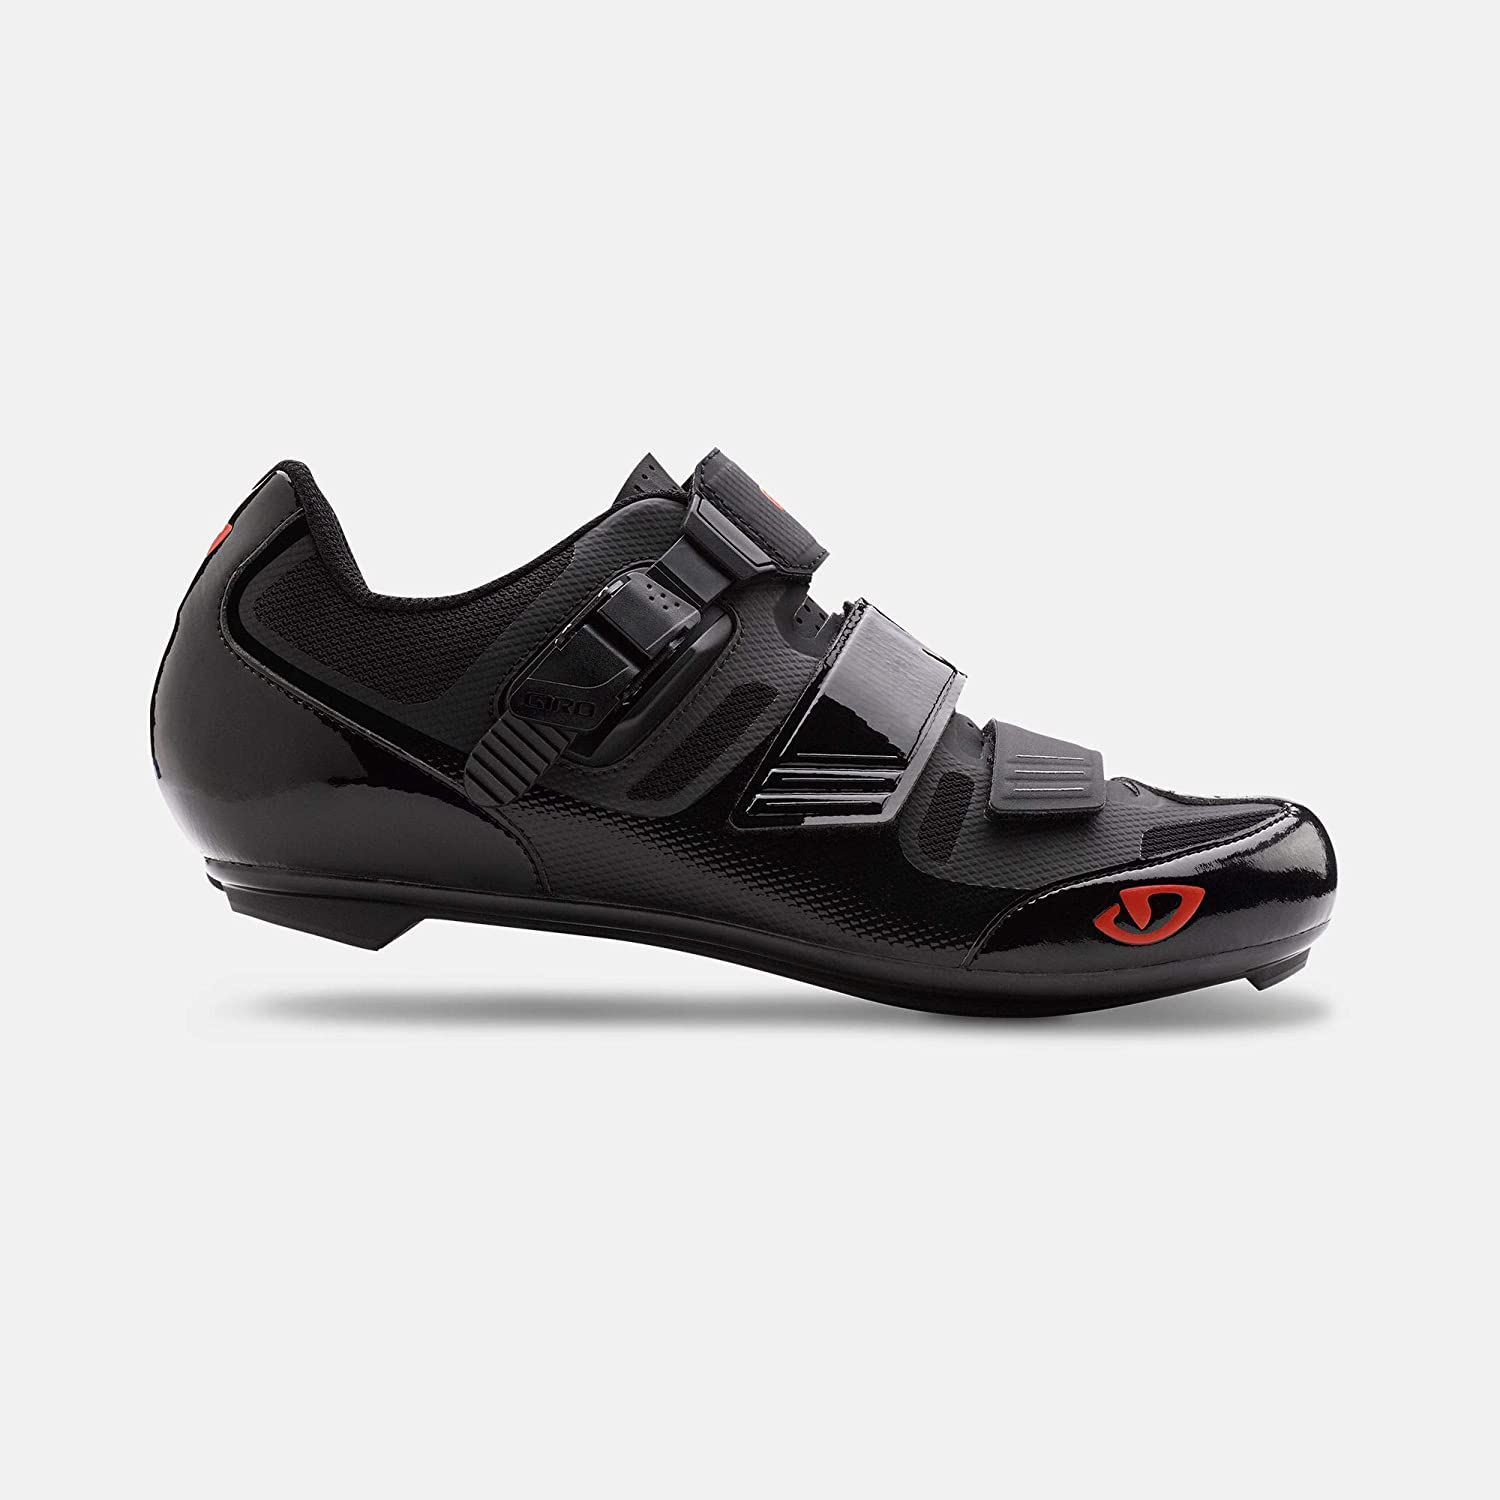 Amazon Prime Day USA deals: Save big on Giro shoes - Cycling Weekly